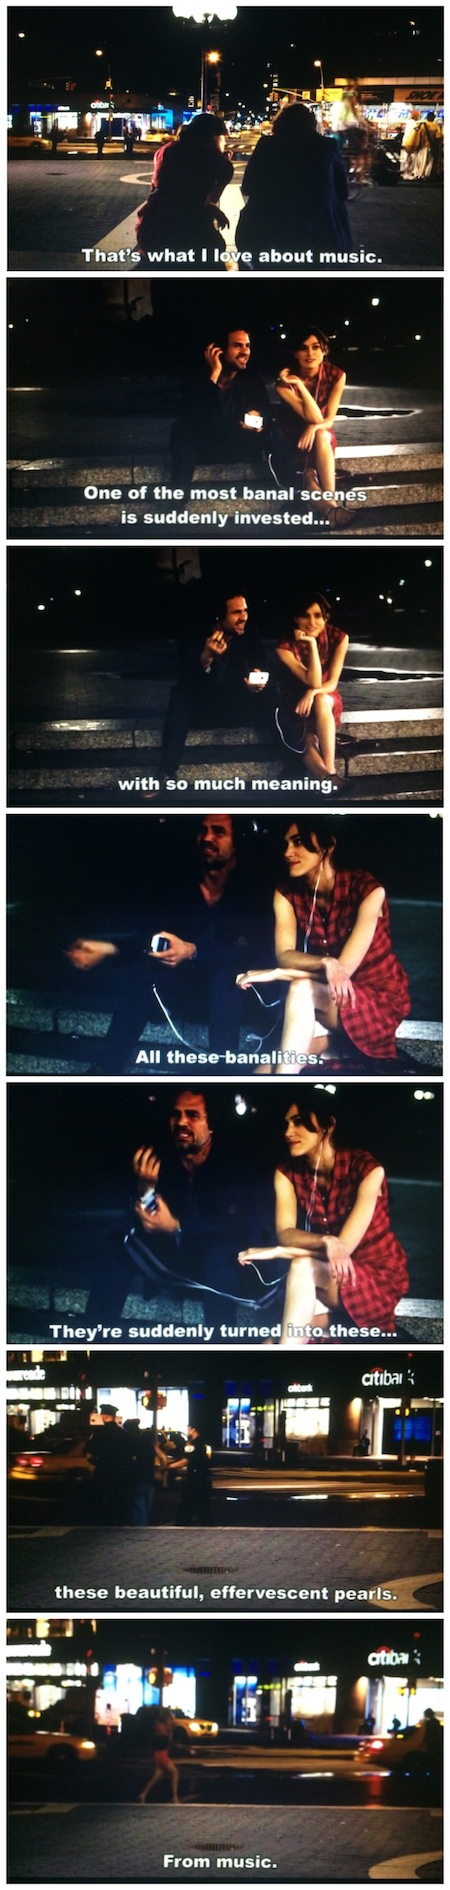 From the movie Begin Again (2013)